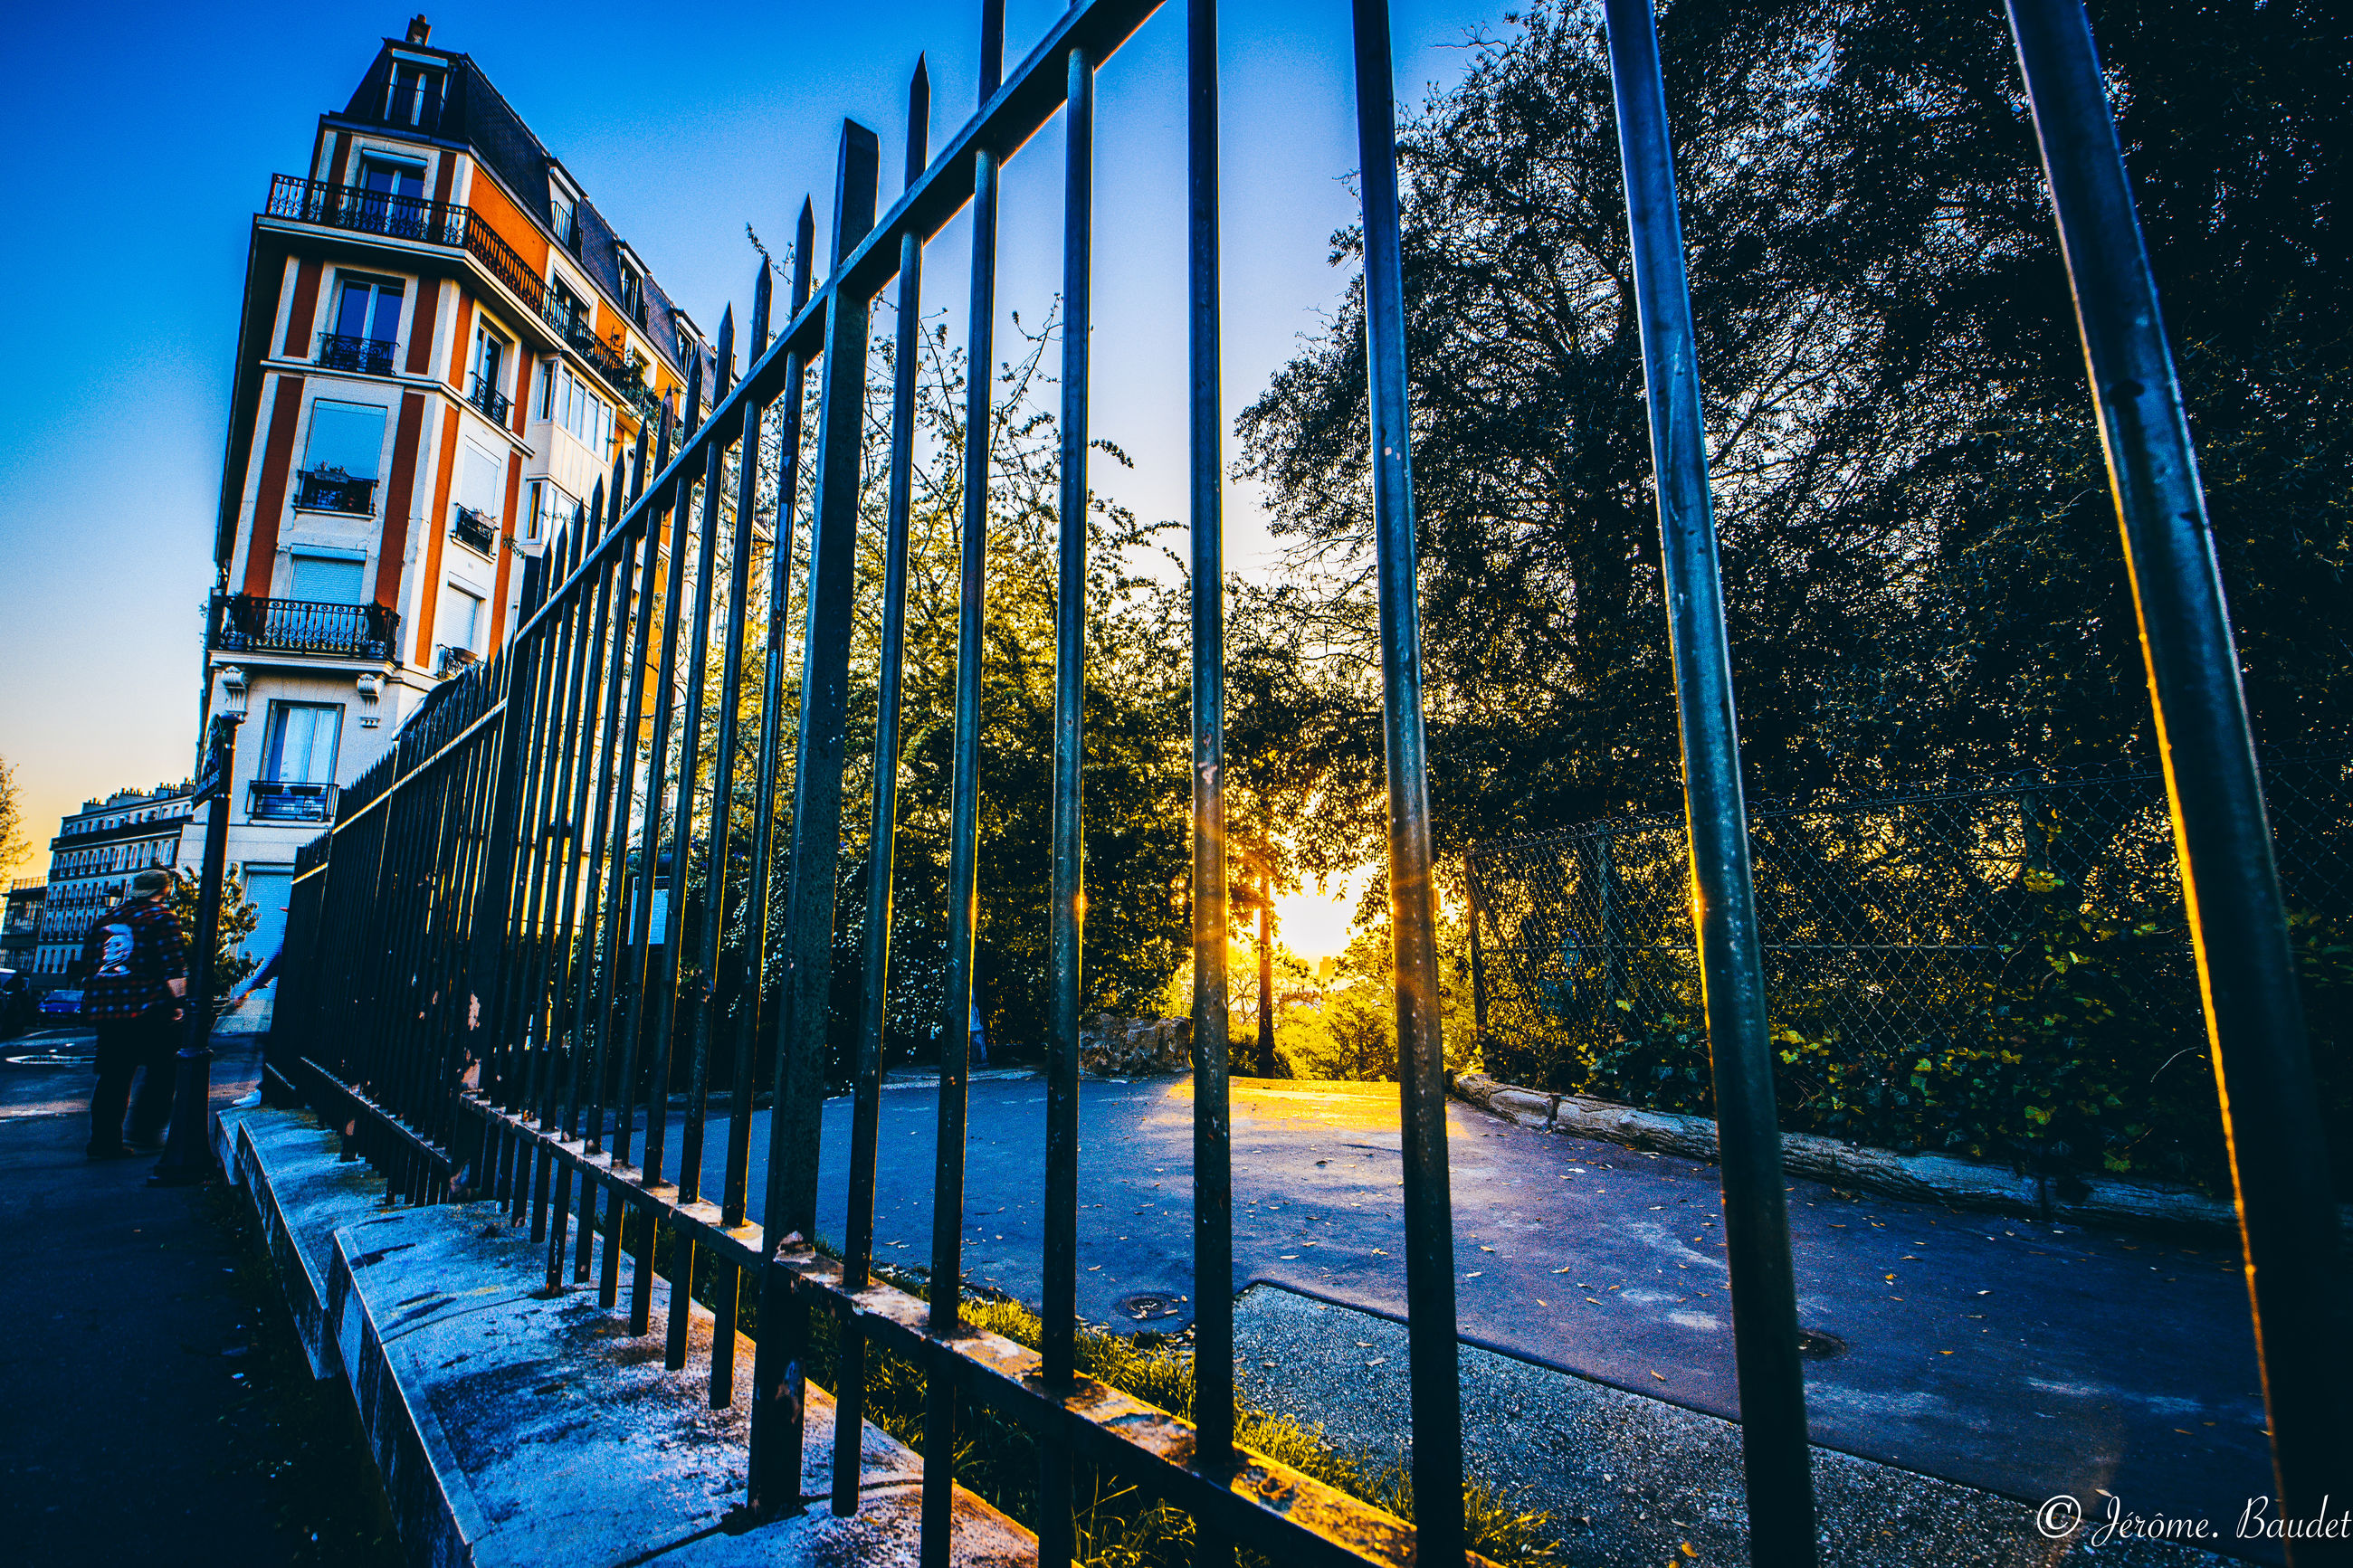 architecture, building exterior, tree, built structure, sky, nature, city, plant, street, railing, water, sunset, no people, barrier, transportation, sunlight, outdoors, footpath, building